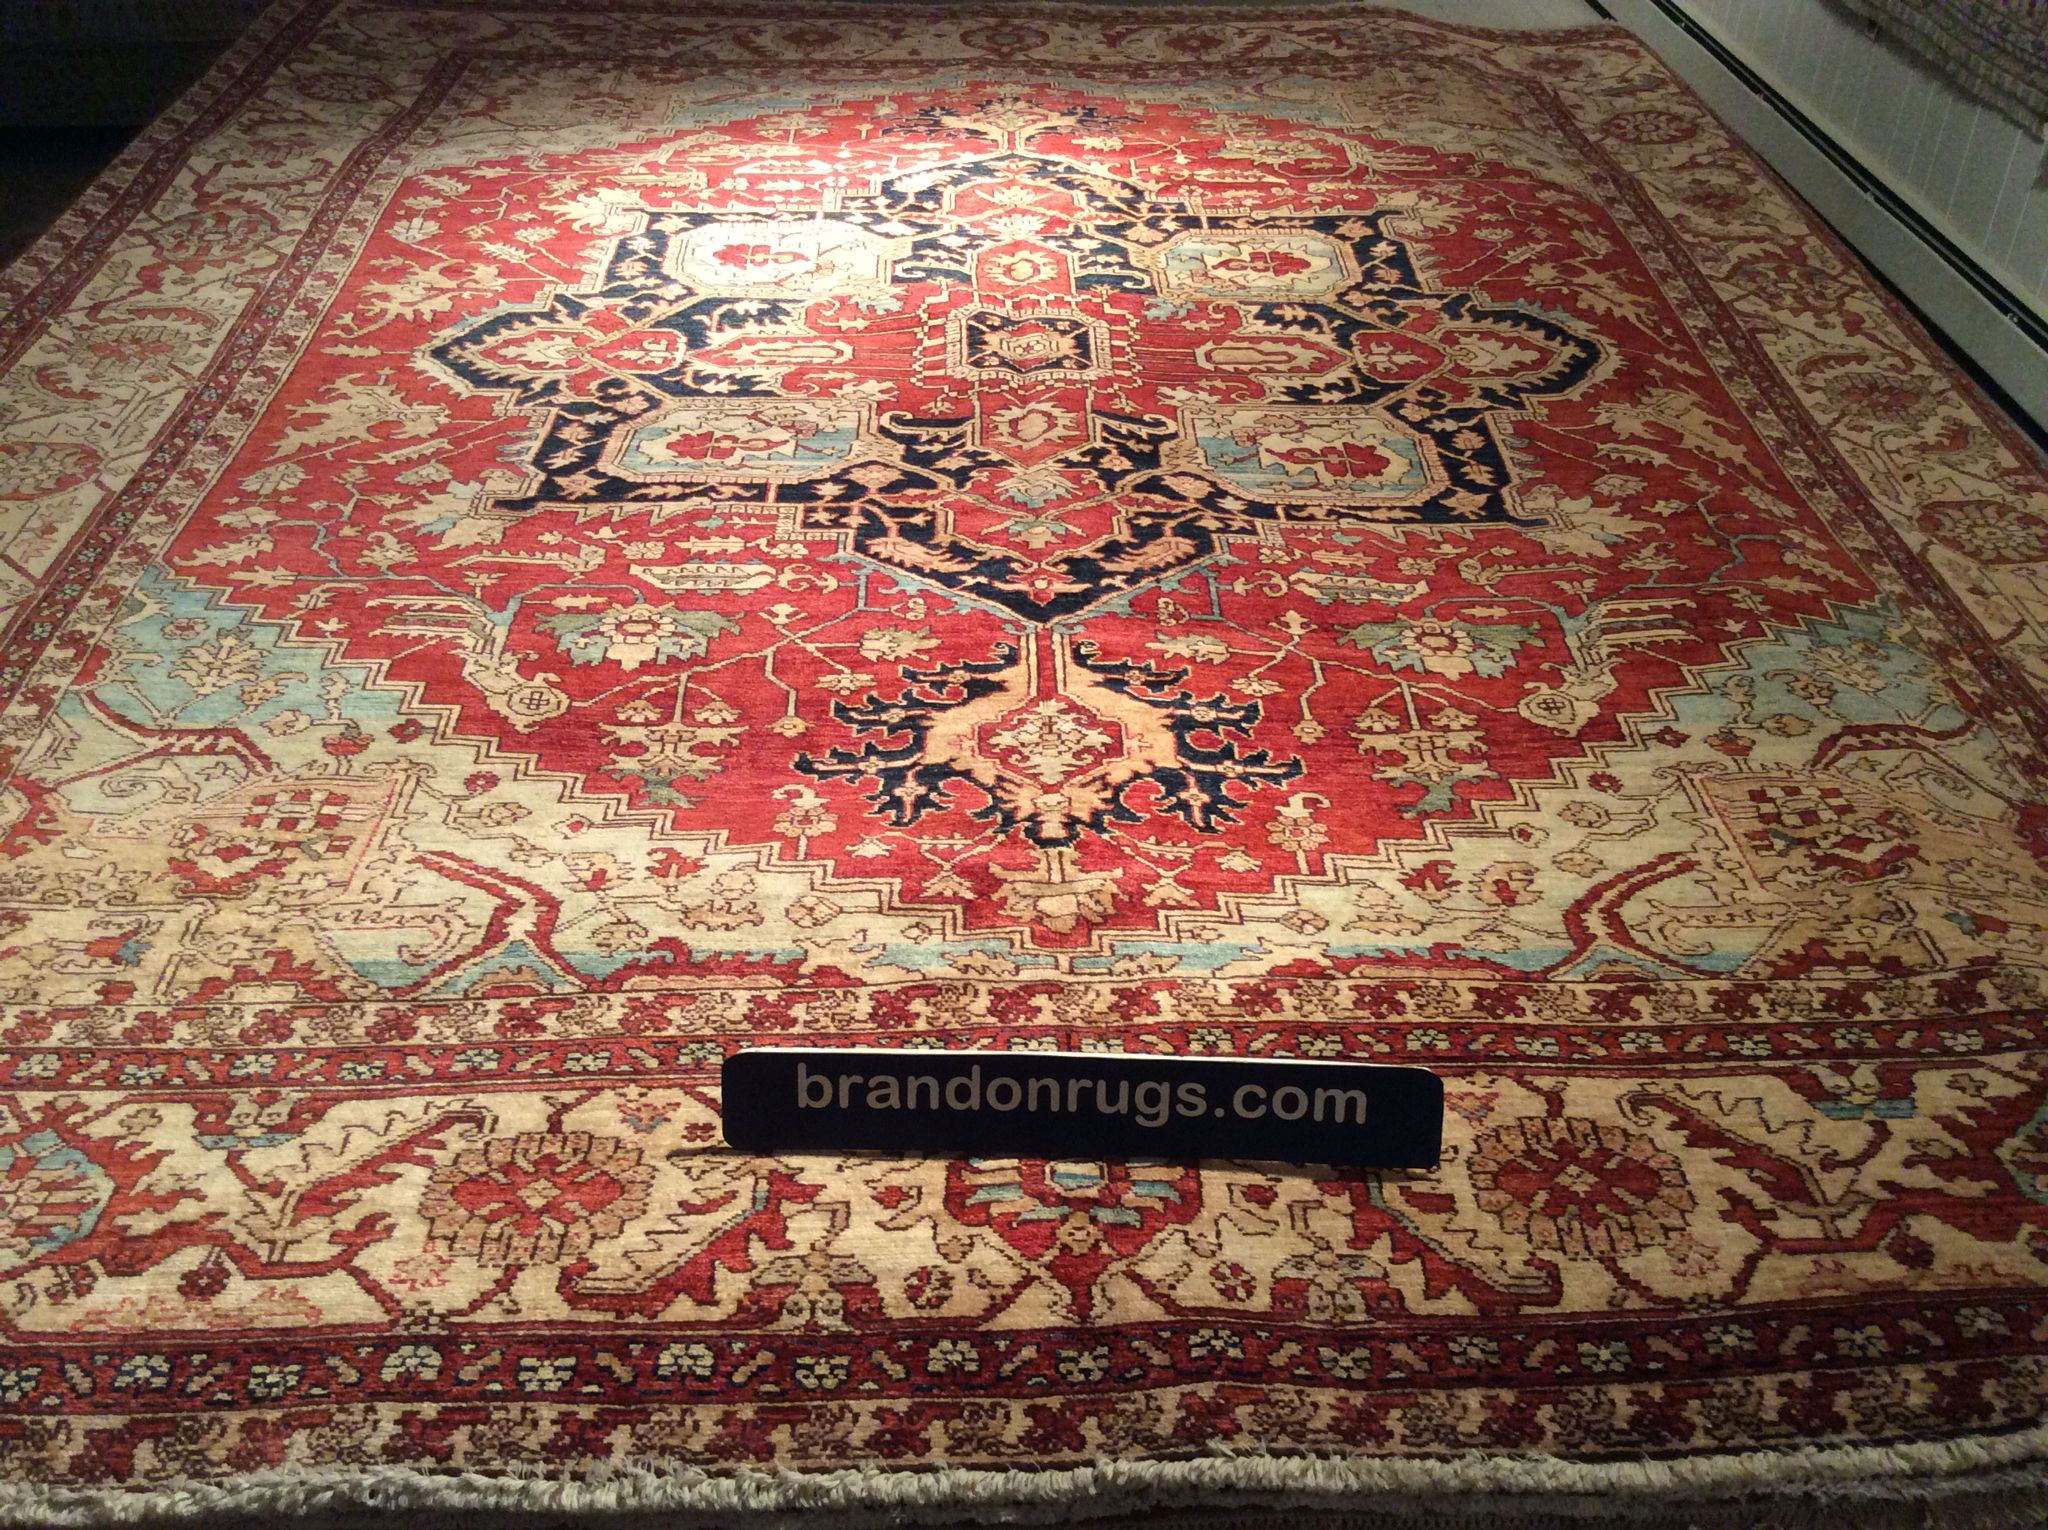 Brandonrugs handknotted antique reproduction oriental